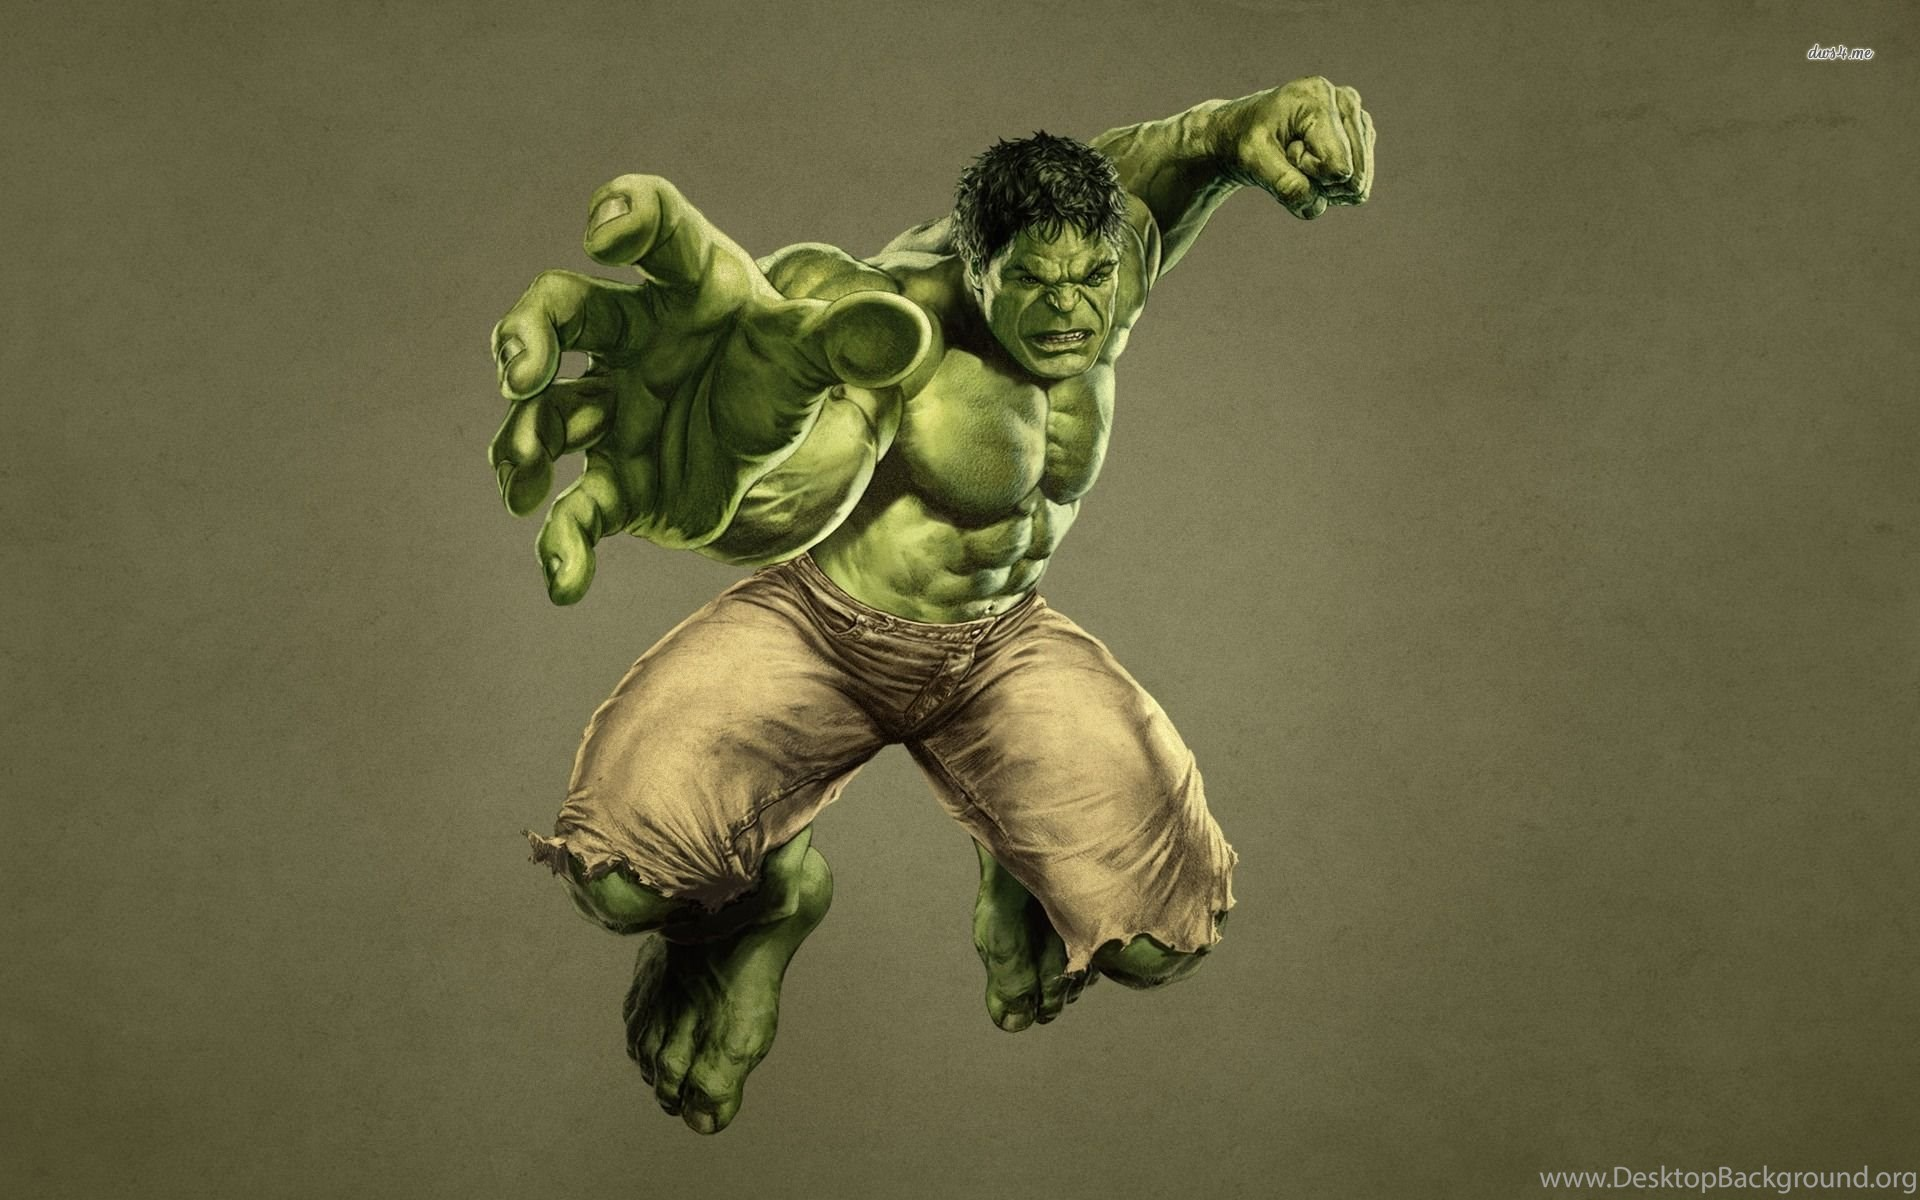 Incredible Hulk Wallpapers Archives Page 5 Of 5 Widewallpapers